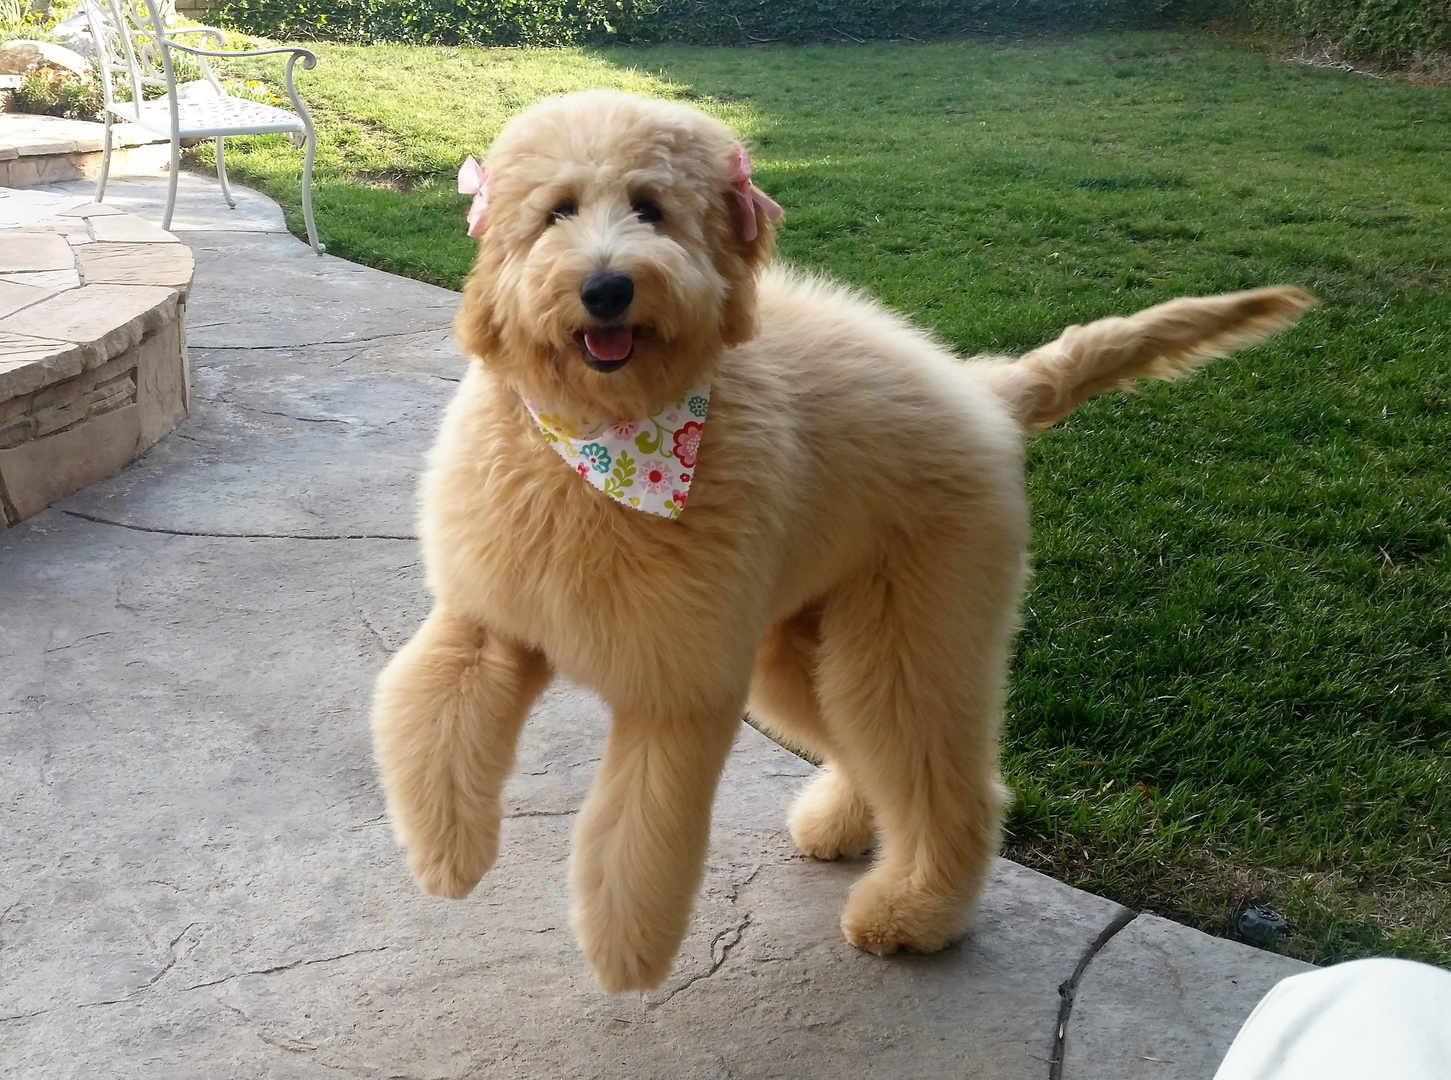 Beth's Little Treasures - Goldendoodle Puppies, Puppy Find